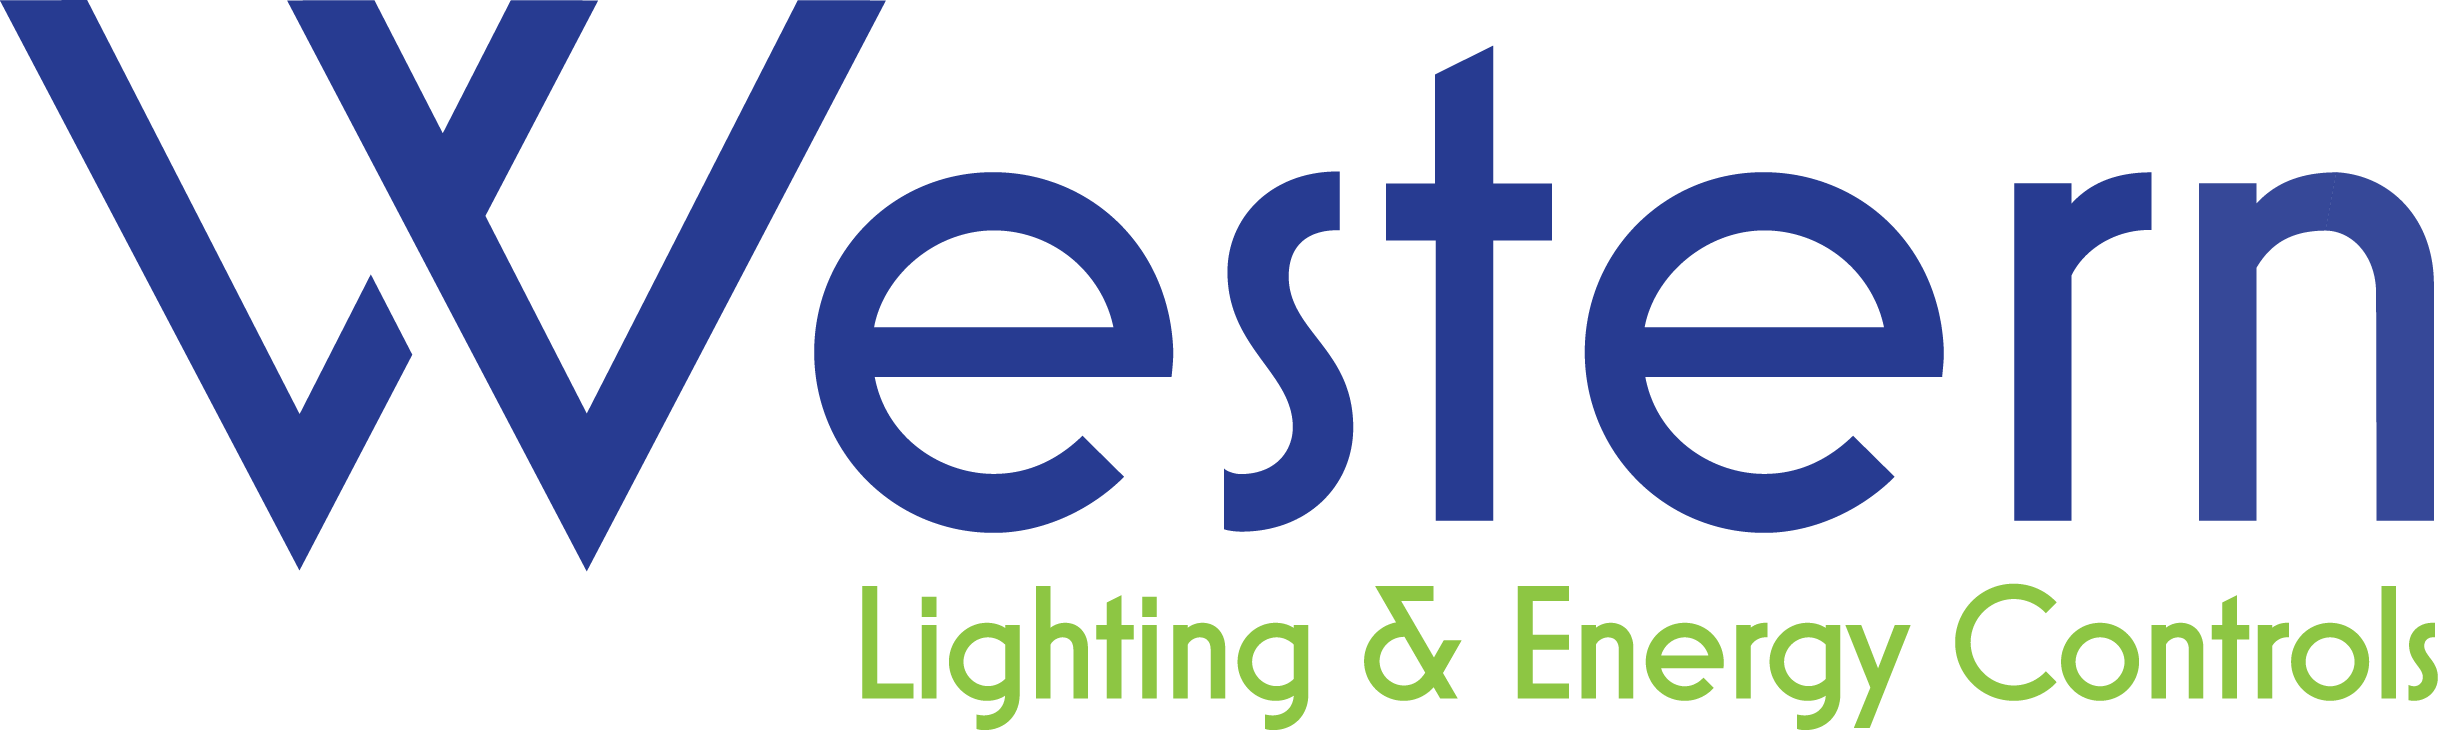 Western Lighting & Energy Controls